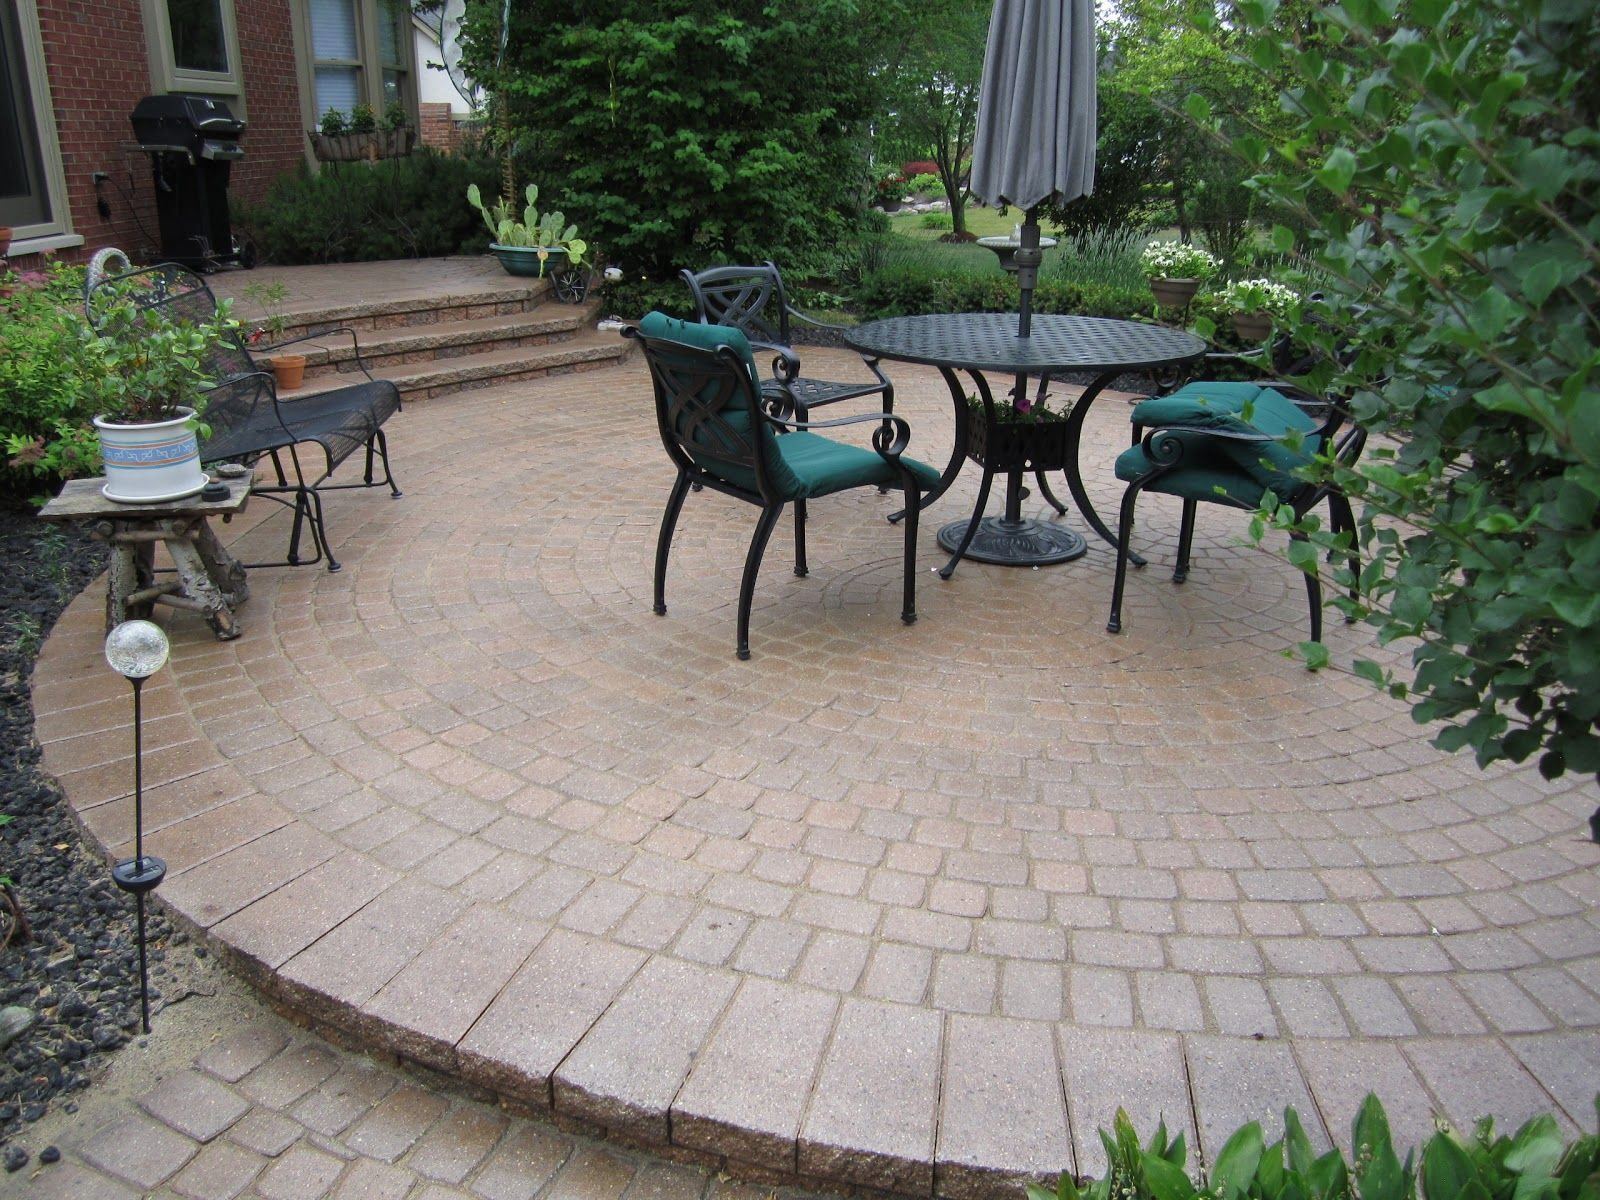 Elevated circular paver patio area with seating